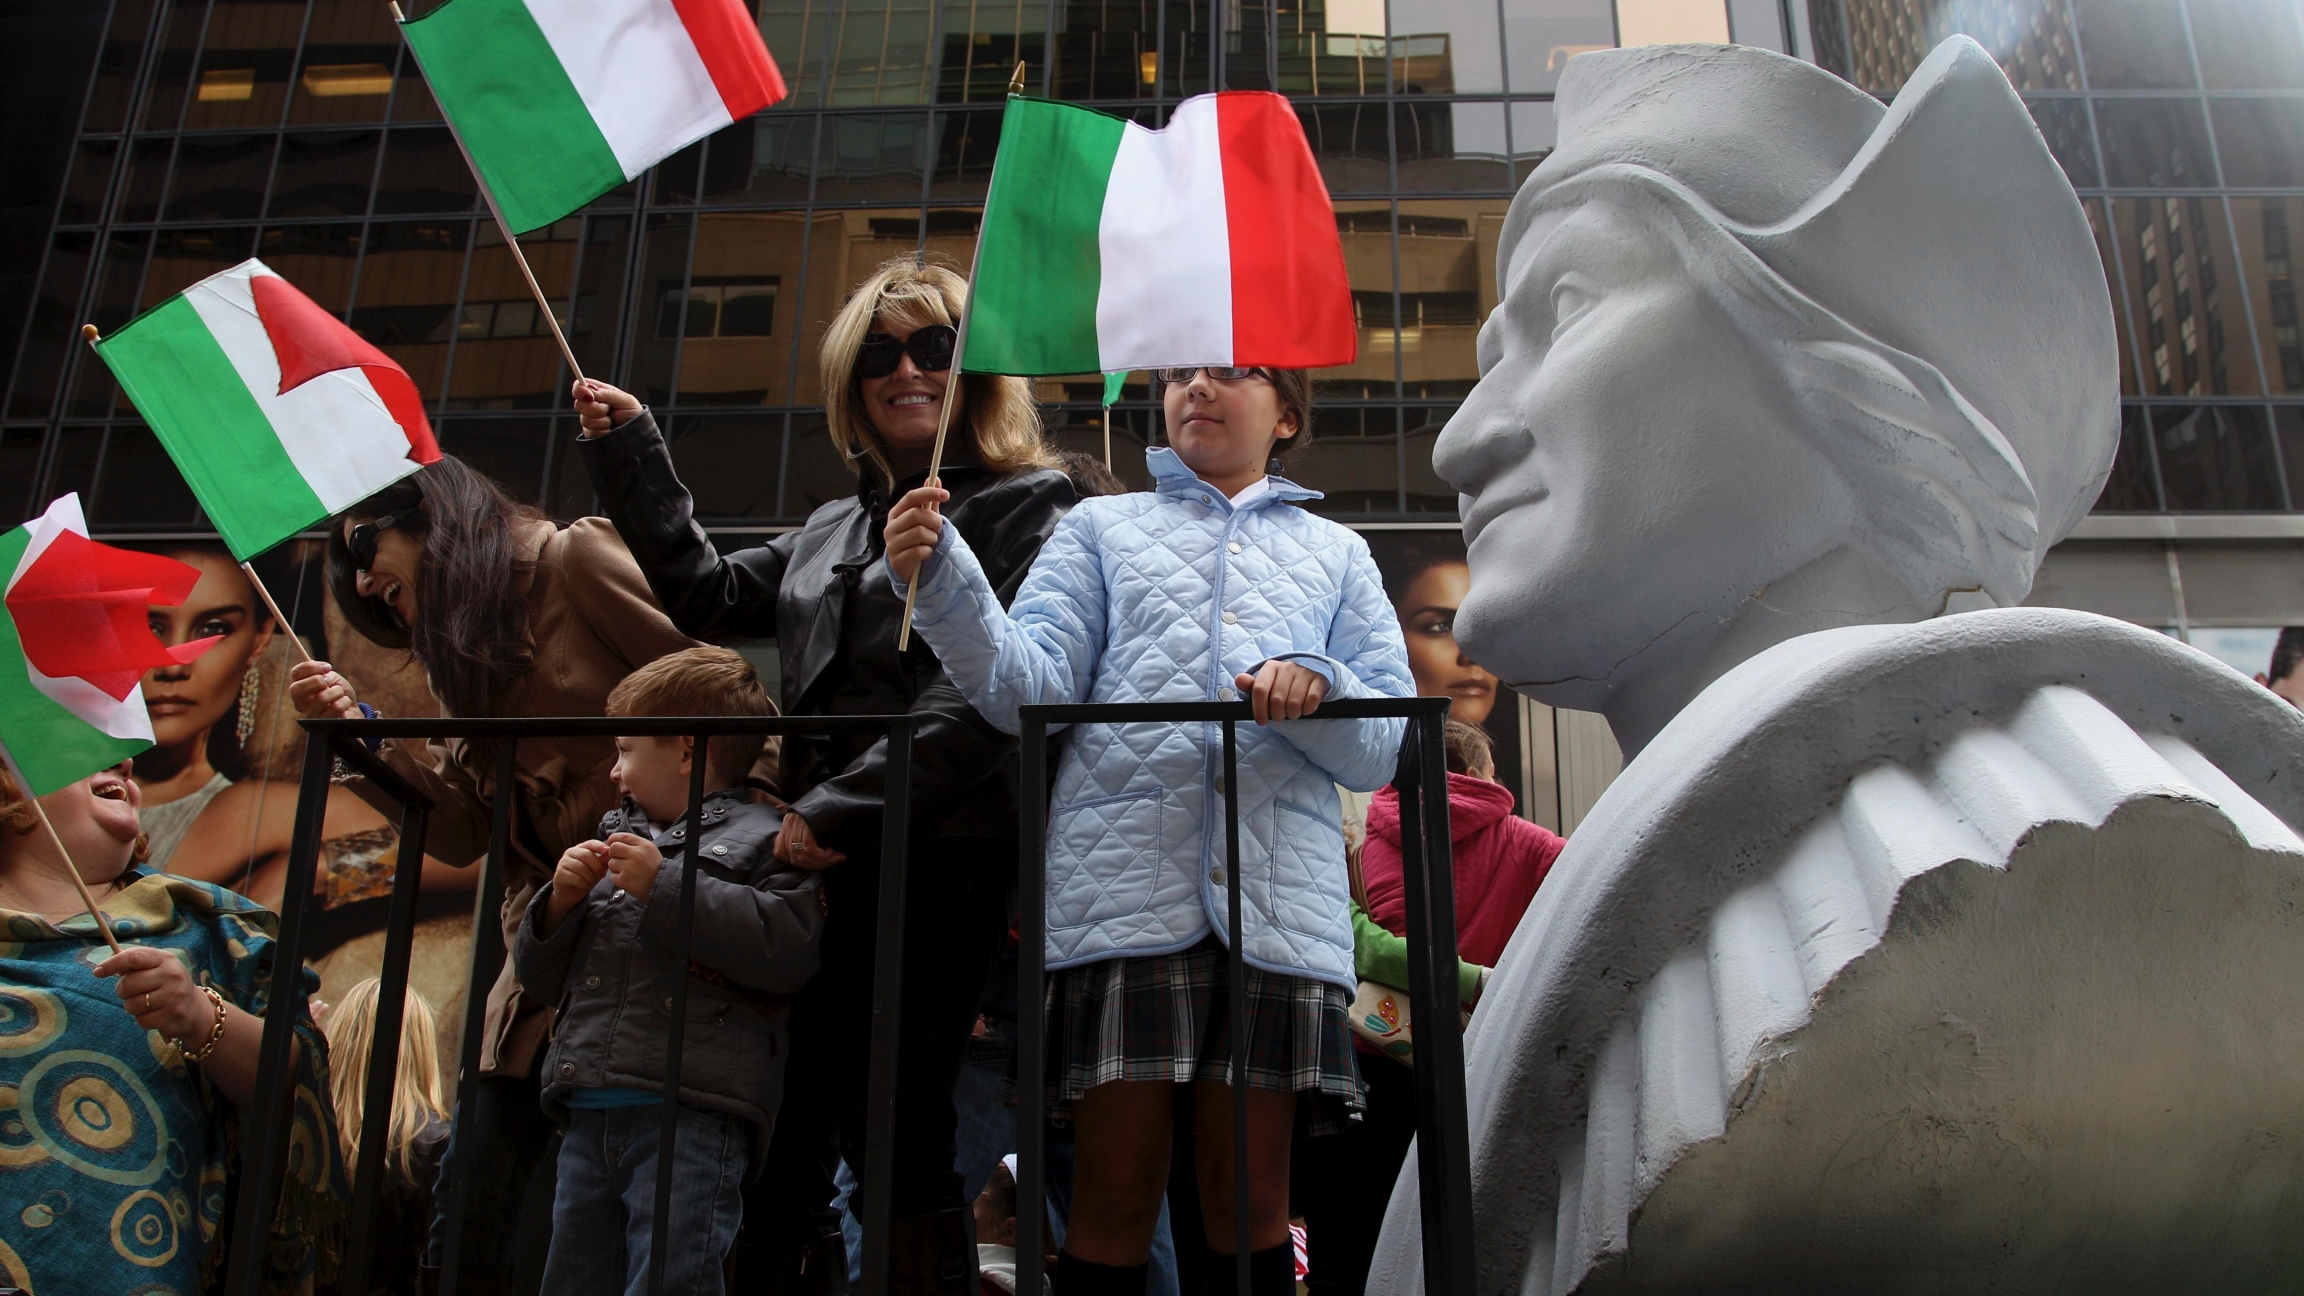 People ride on a float with a large bust of Christopher Columbus during the Columbus Day parade in New York, Oct. 8, 2012. The Oct. 12 federal holiday dedicated to Christopher Columbus continues to divide those who view the explorer as a representative of